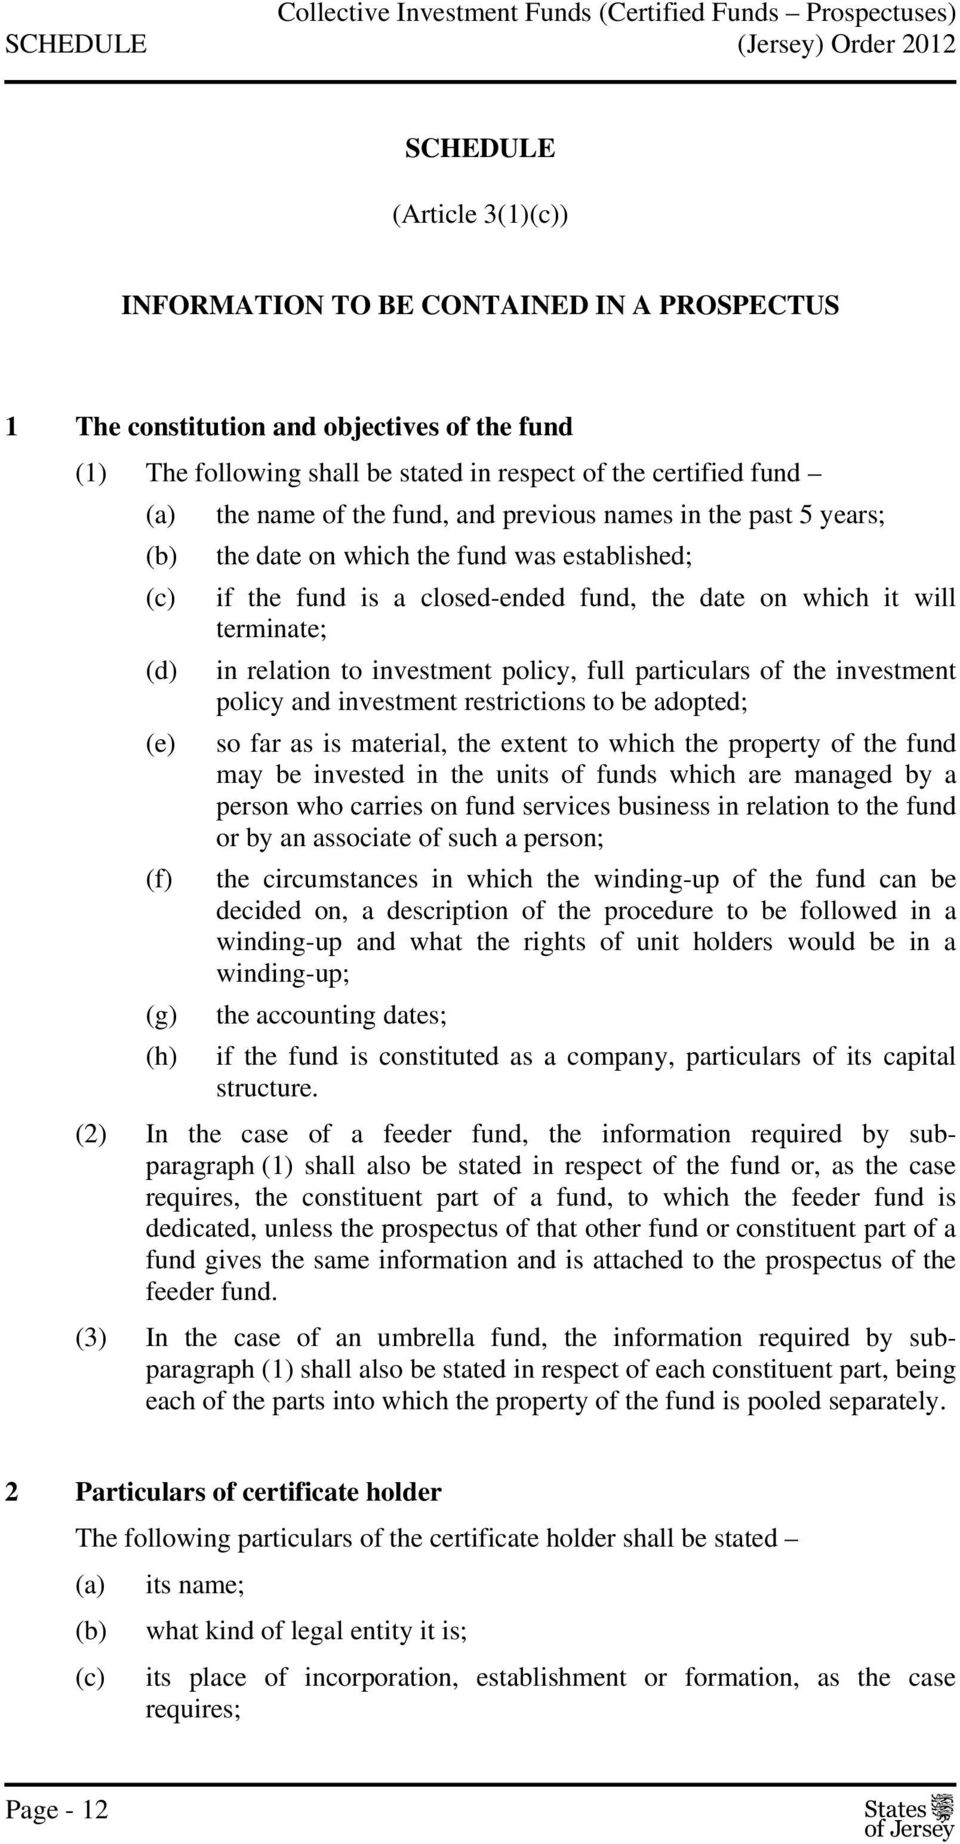 relation to investment policy, full particulars of the investment policy and investment restrictions to be adopted; (e) so far as is material, the extent to which the property of the fund may be